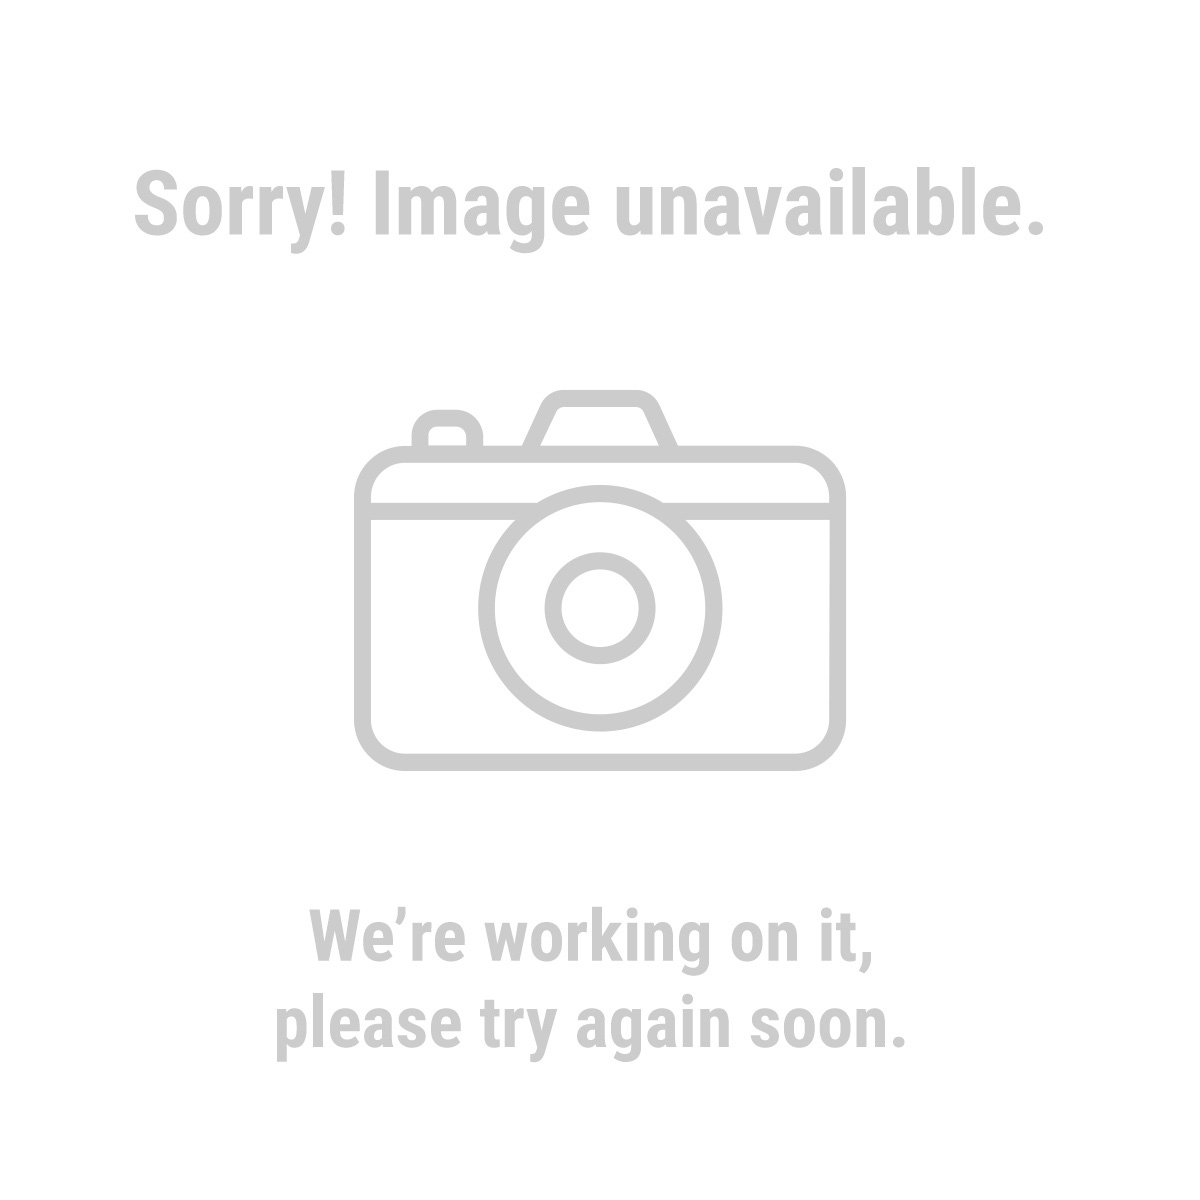 Warrior 61220 4 in. 24 Grit Masonry Grinding Wheel